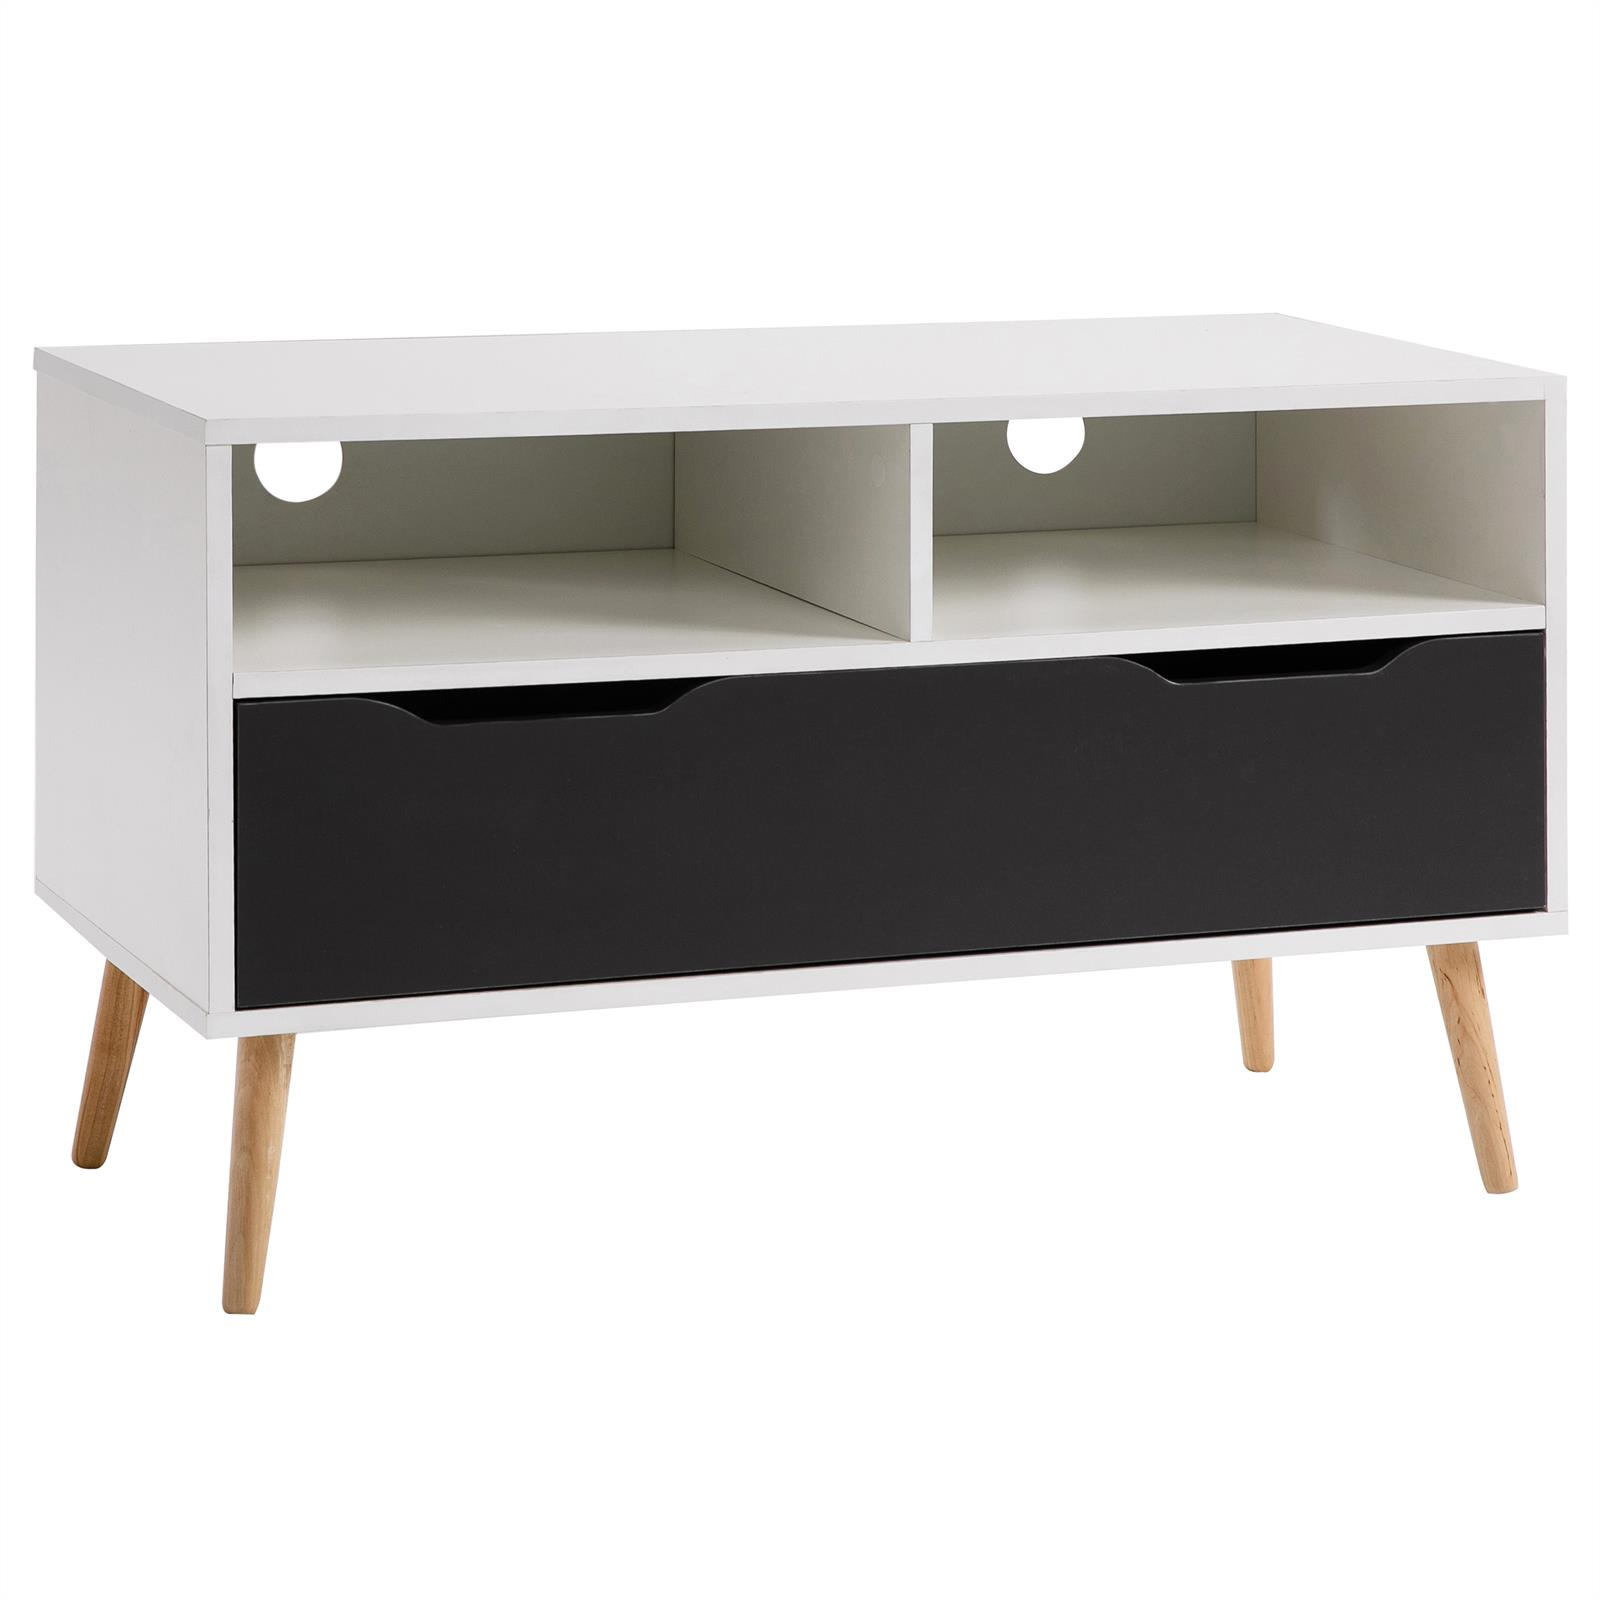 tv rack hifi m bel lowboard fernsetisch schrank wei grau 90 cm breit ebay. Black Bedroom Furniture Sets. Home Design Ideas